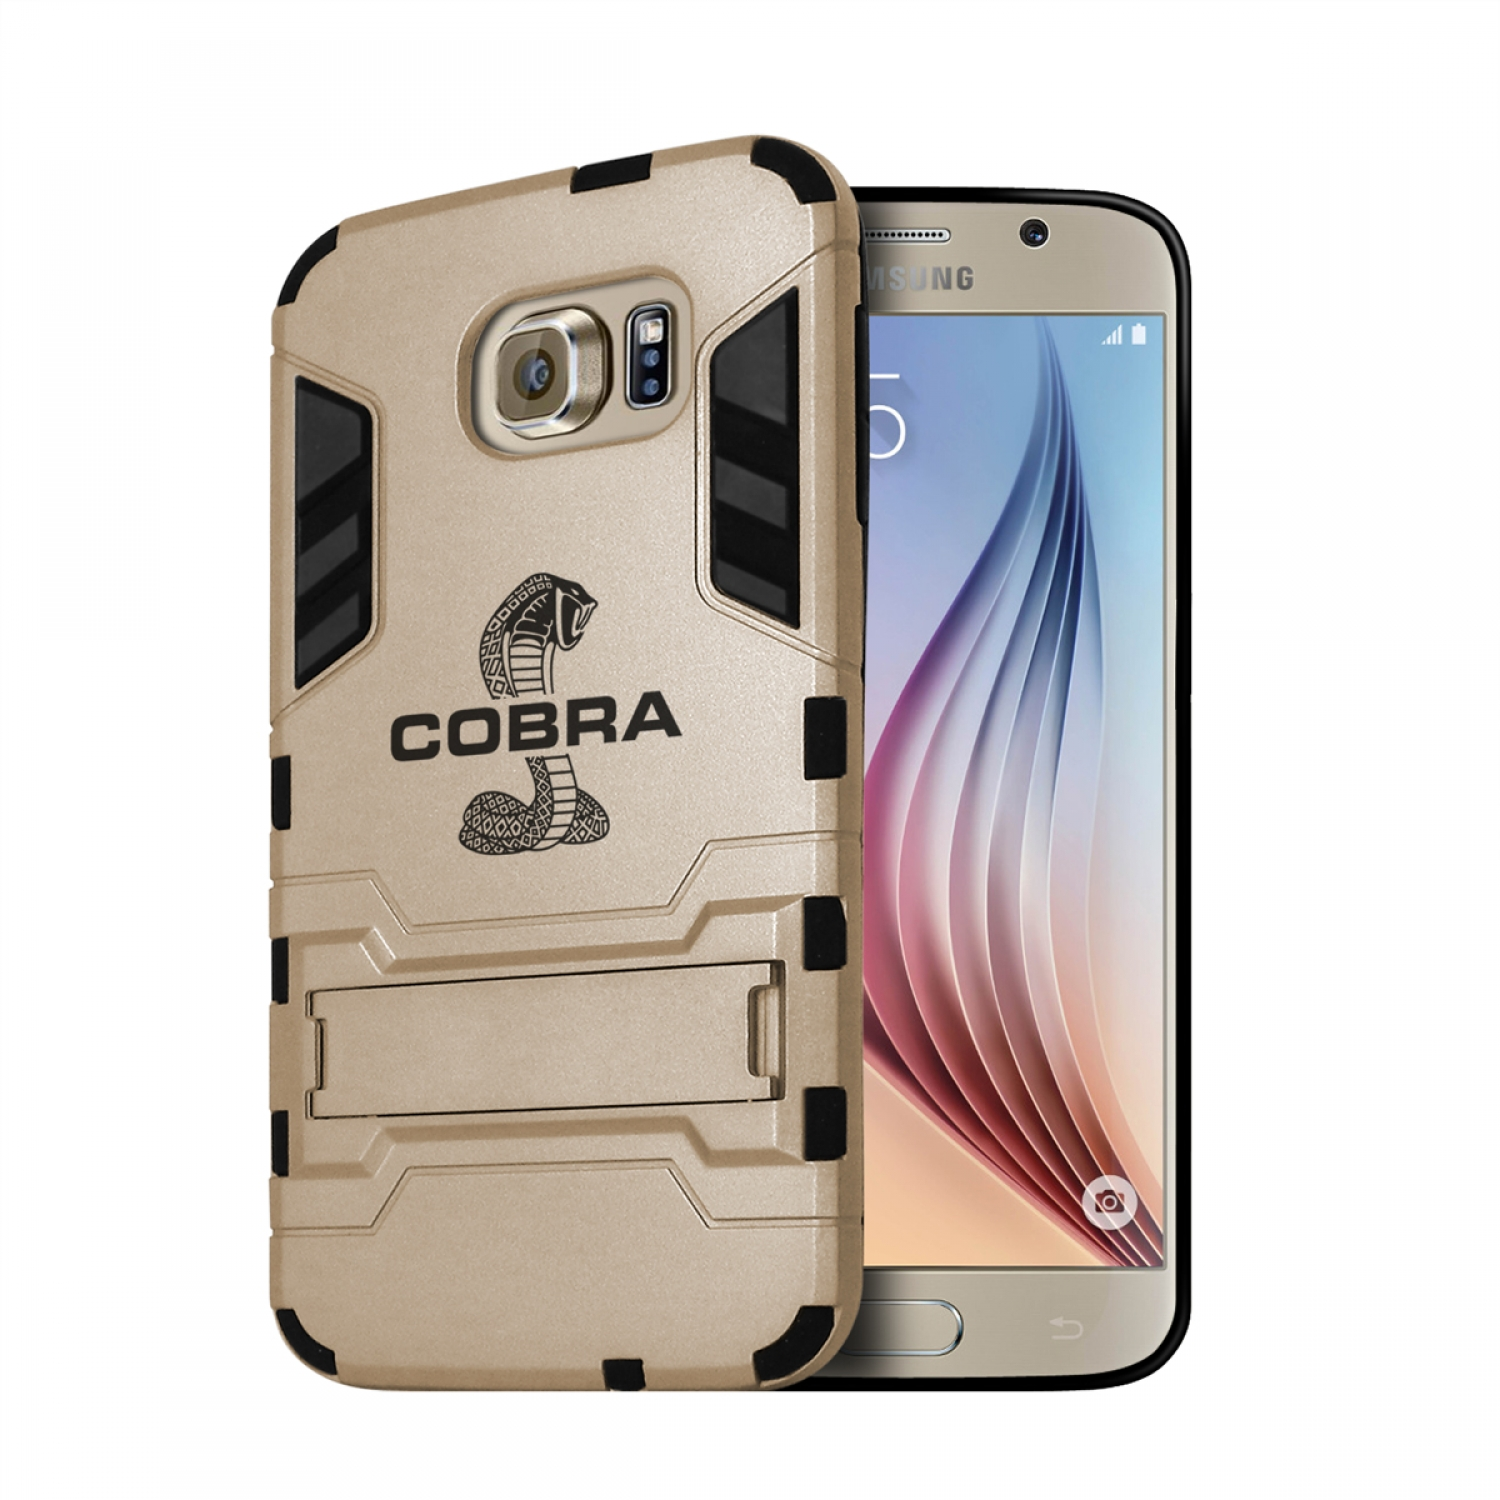 Ford Mustang Cobra Samsung Galaxy S6 Shockproof TPU ABS Hybrid Golden Phone Case